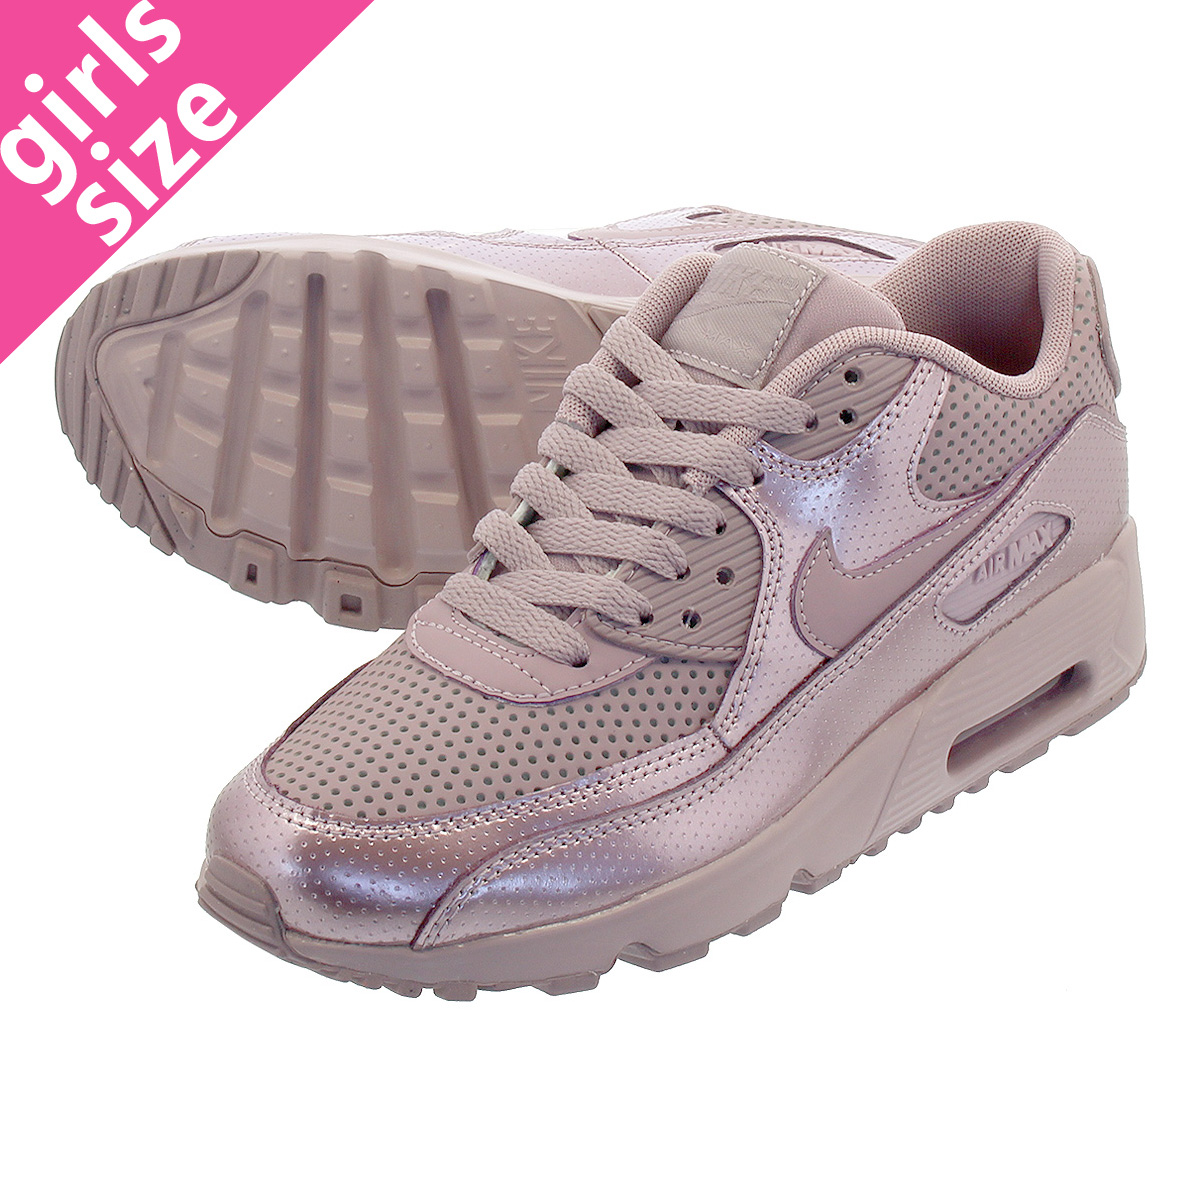 Nike Youth Air Max 90 SE LTR GS Leather Elemental Rose Trainers 5 US